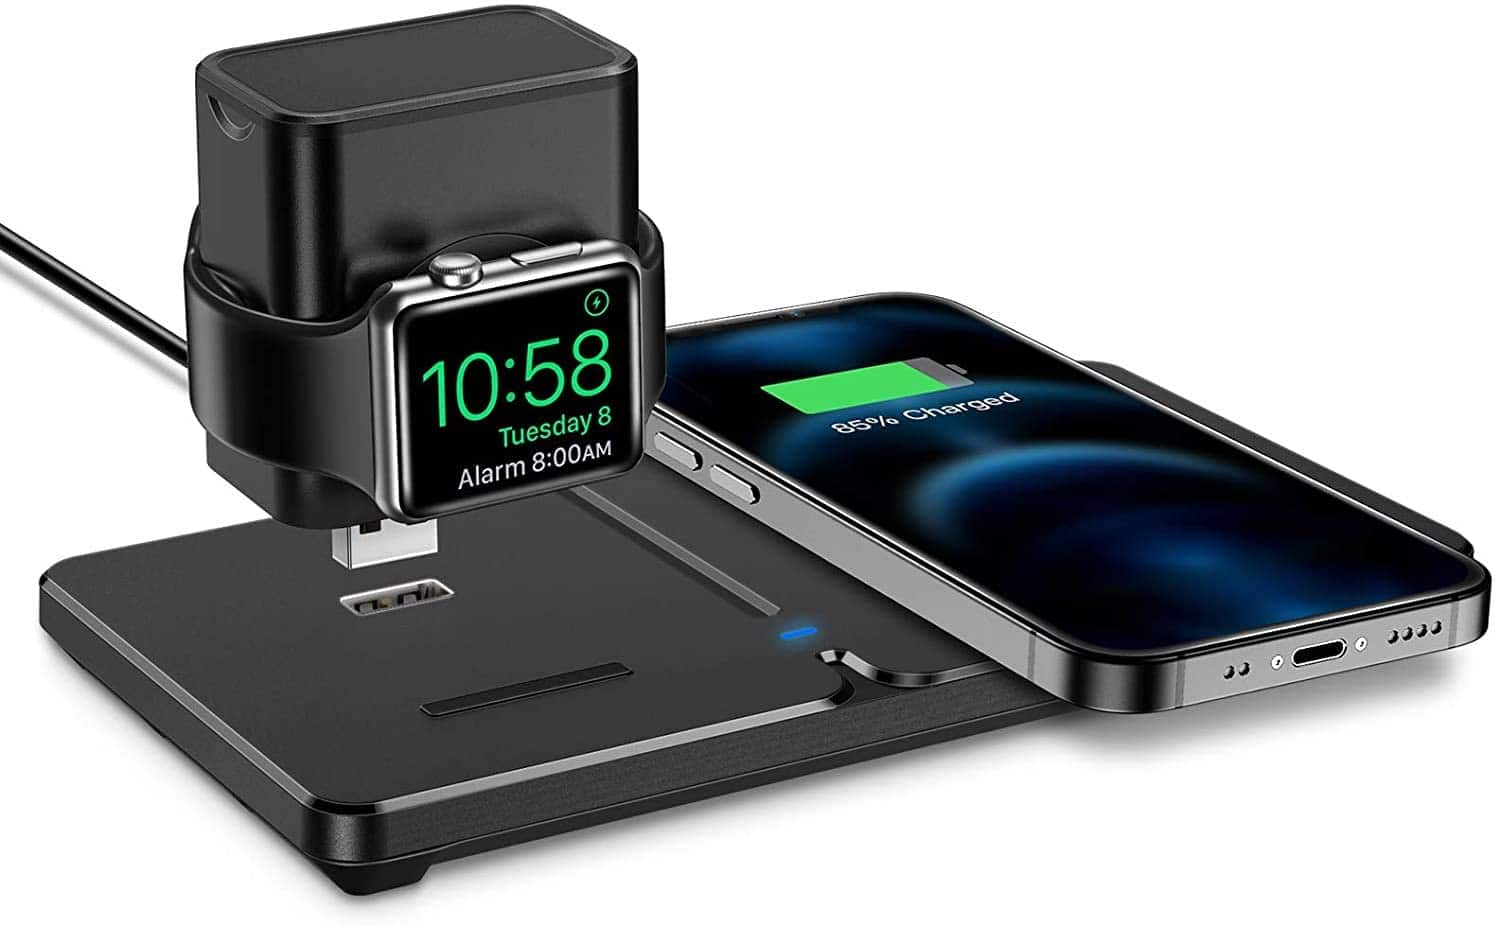 ESR 2-in-1 Detachable Wireless Charging Station for Apple Watch and iPhone $11.99, and More + Free Shipping w/ Amazon Prime or Orders $25+